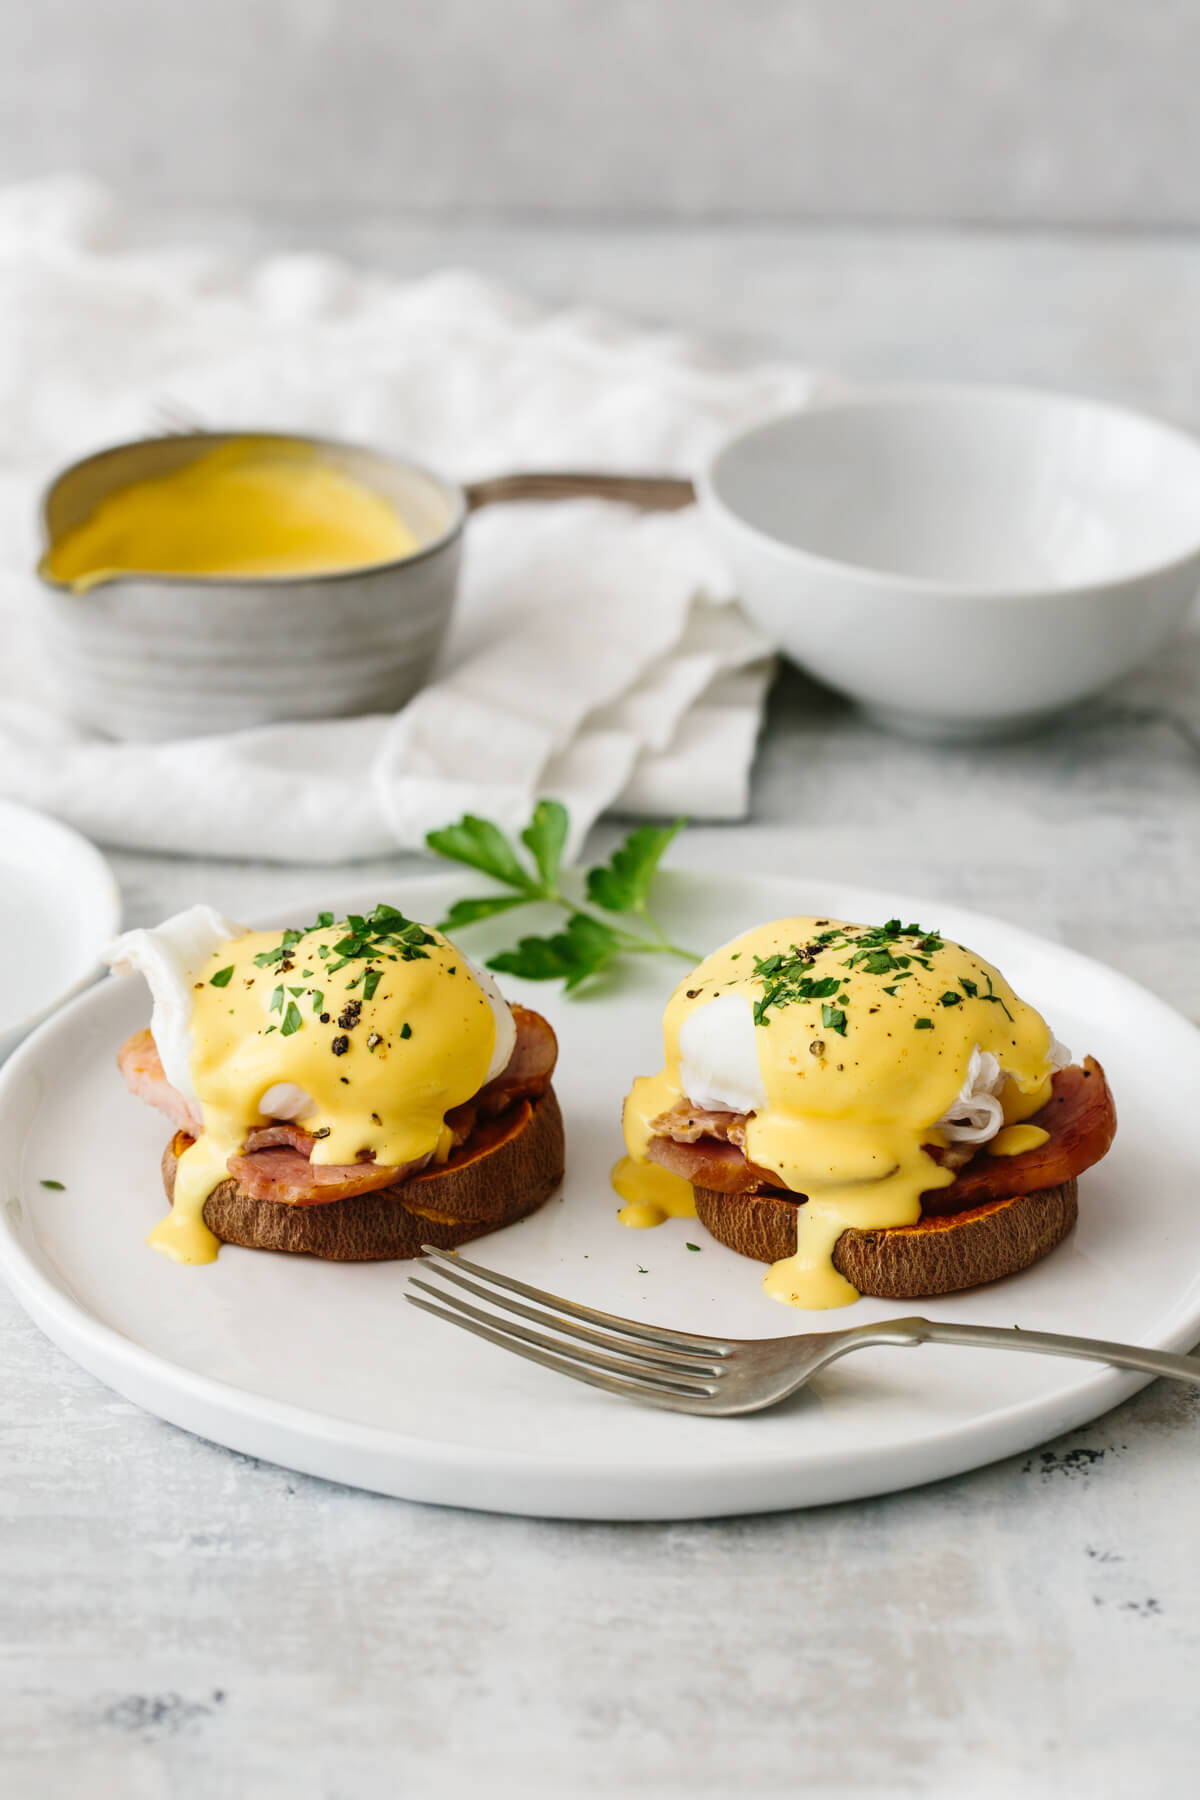 Two healthy eggs benedict on a plate.